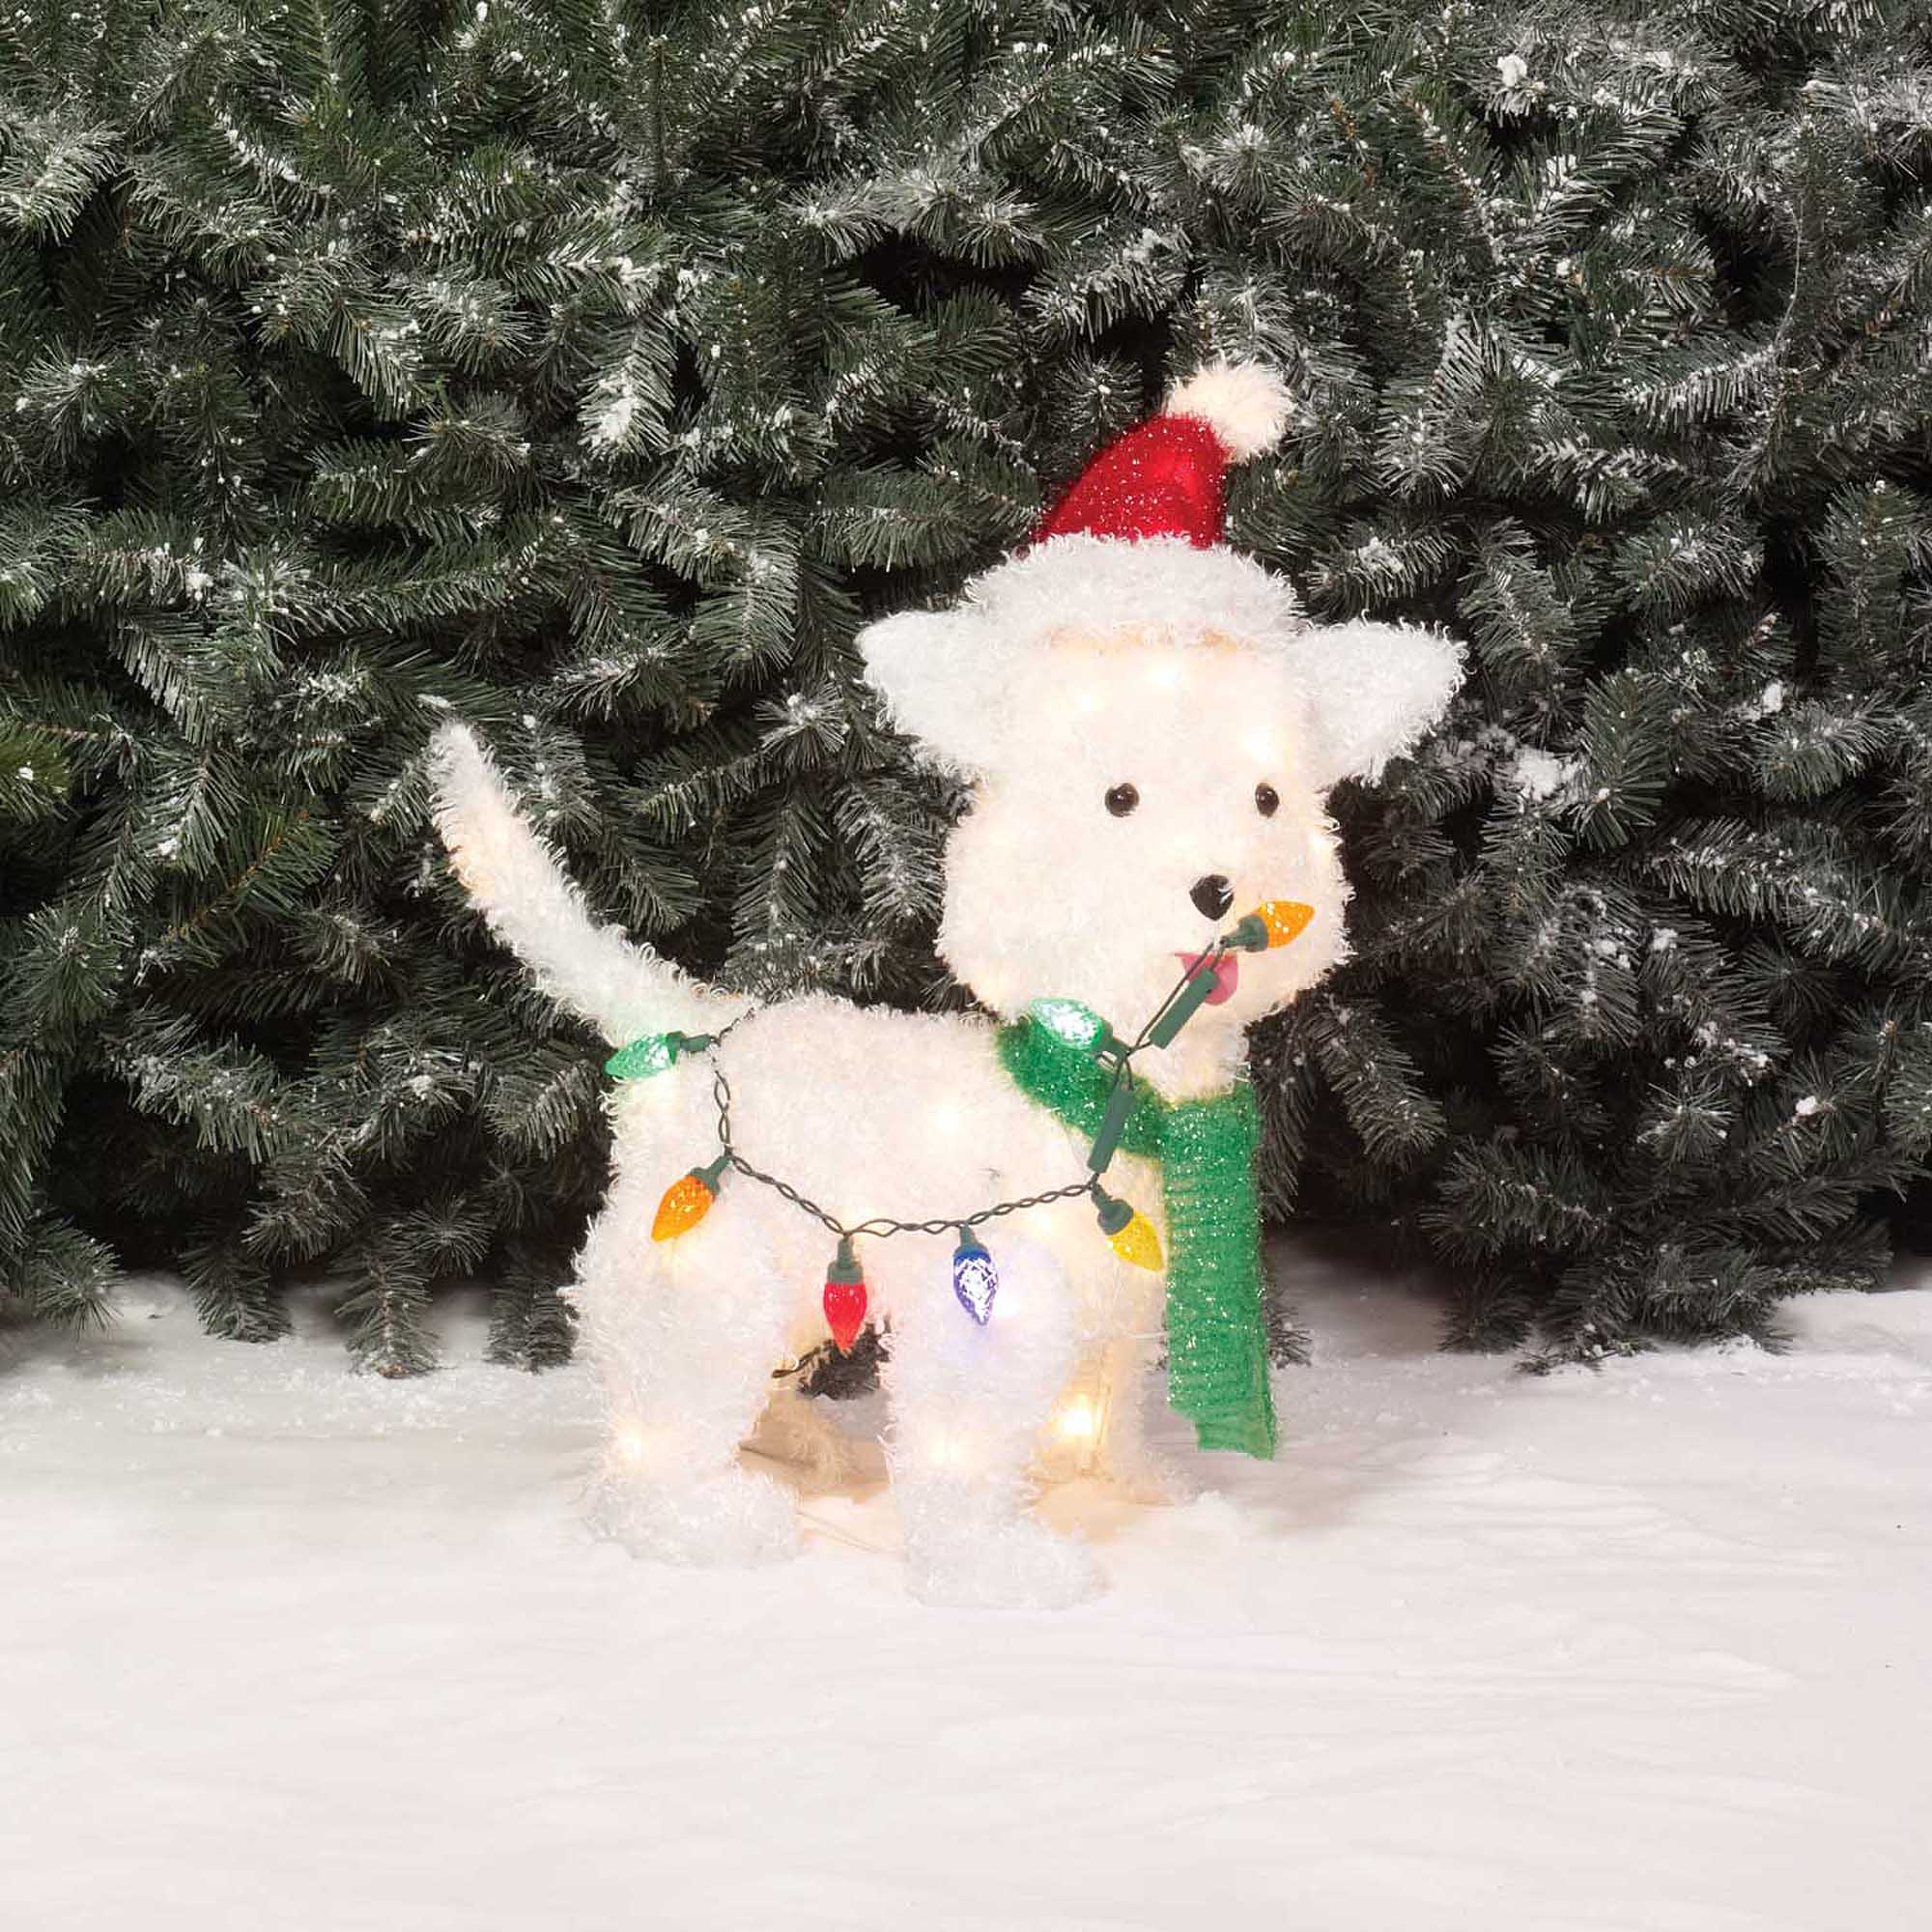 holiday time christmas decor 24 fluffy dog light sculpture walmartcom - Outdoor Dog Christmas Decorations